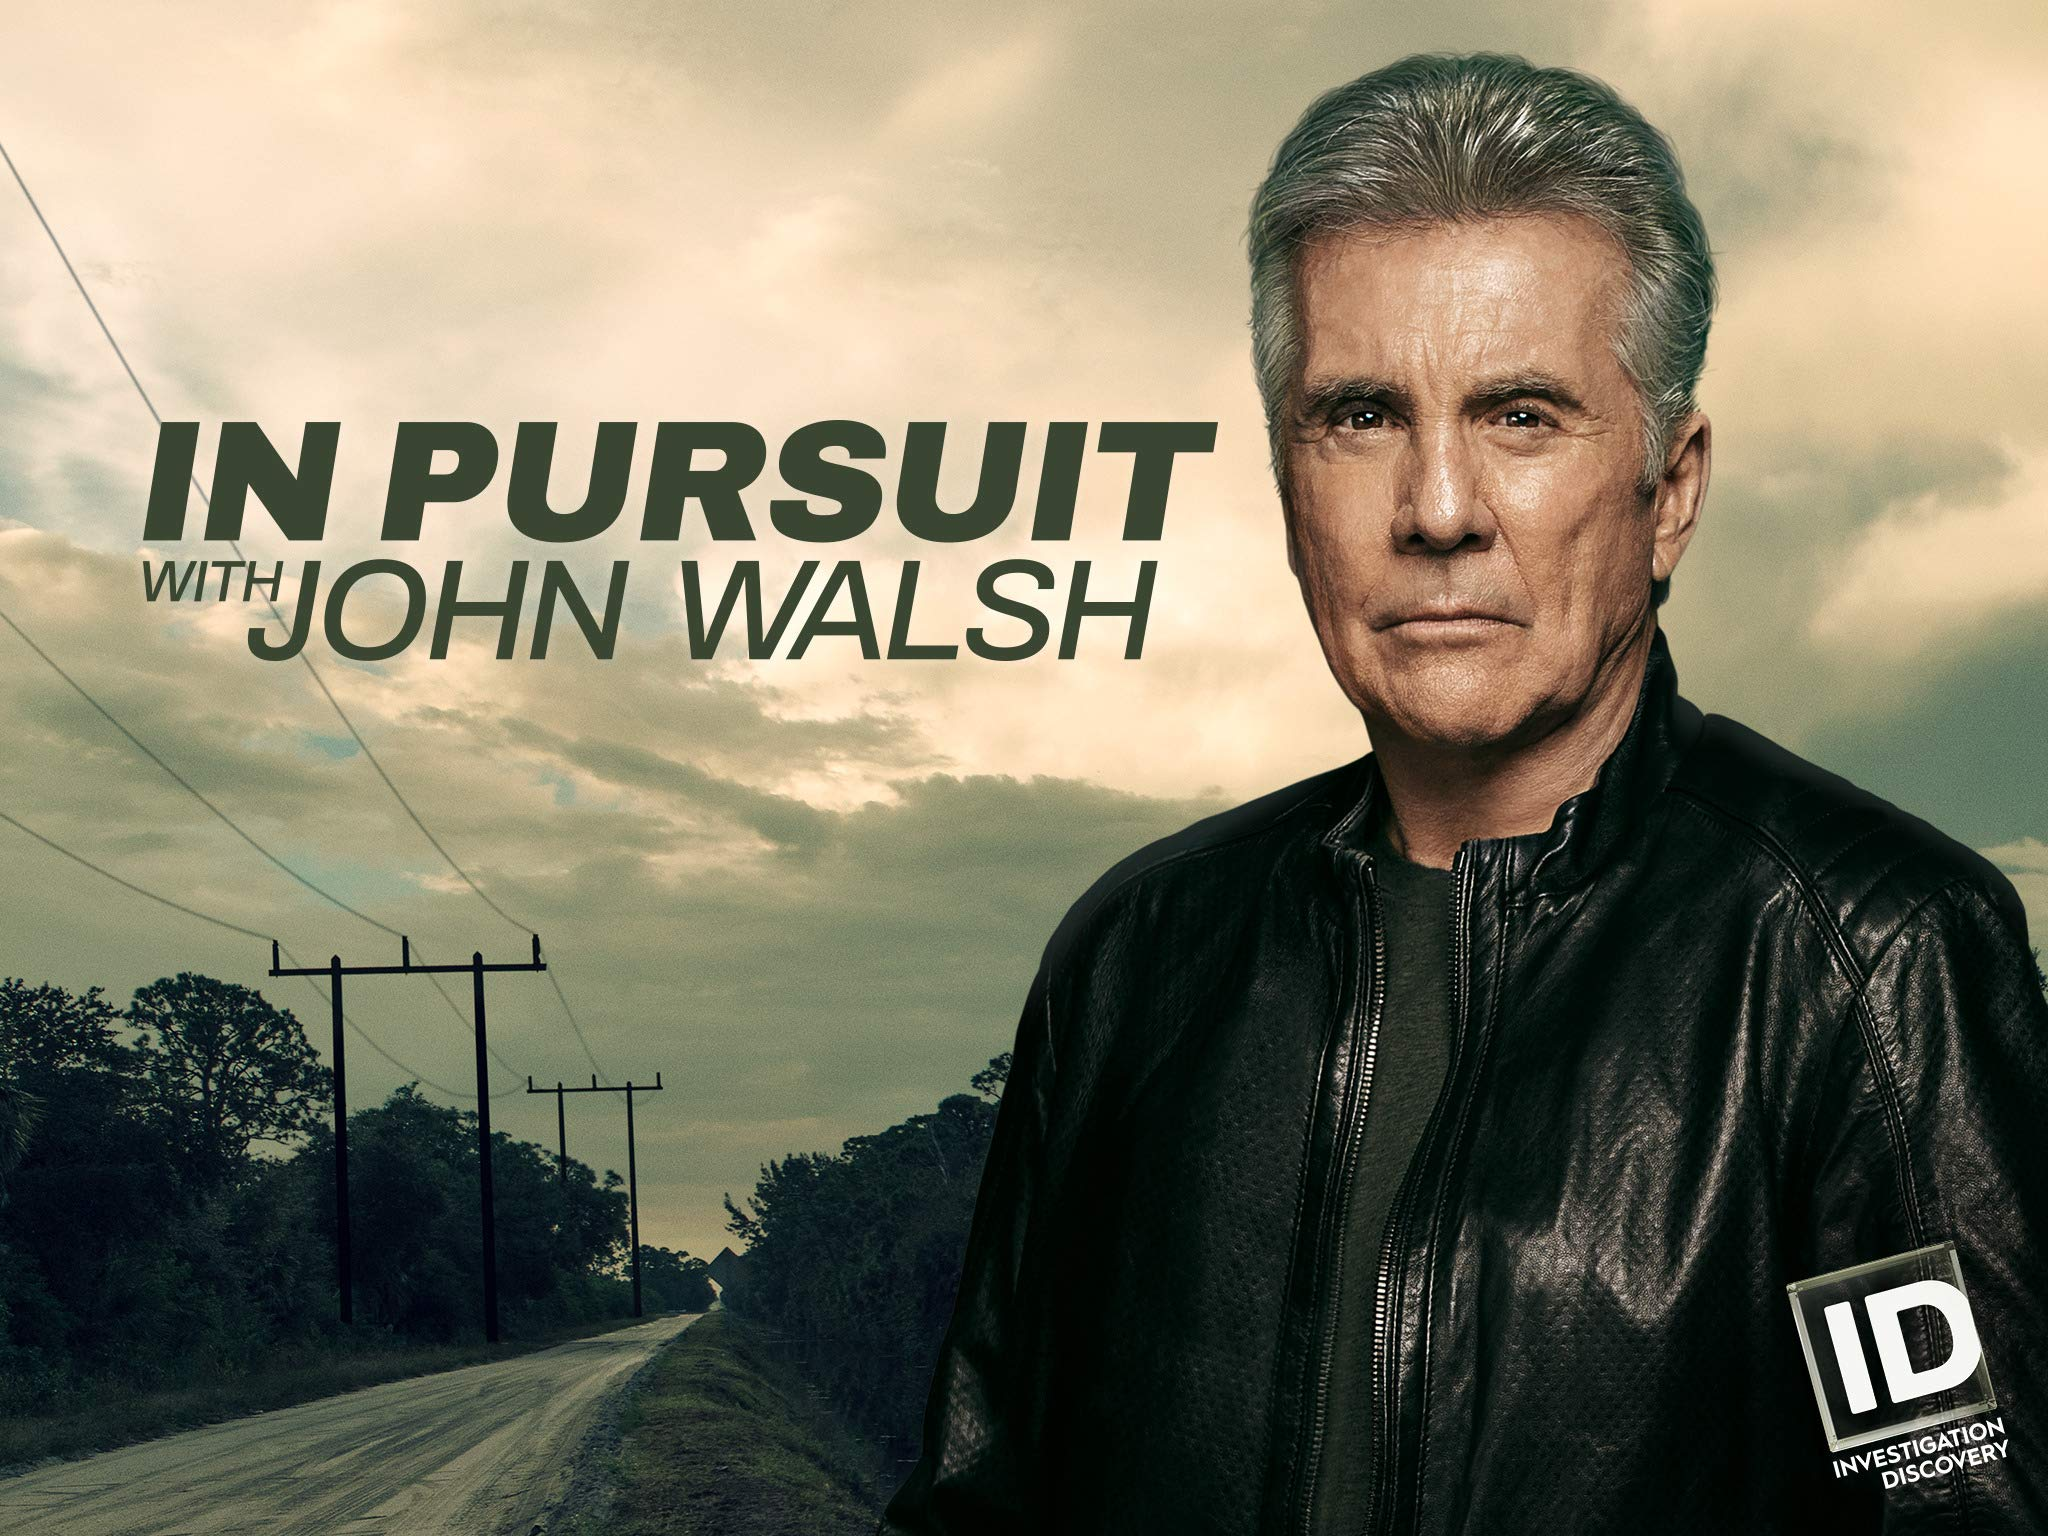 Watch In Pursuit With John Walsh Season 1 Prime Video Callahan walsh is on facebook. in pursuit with john walsh season 1